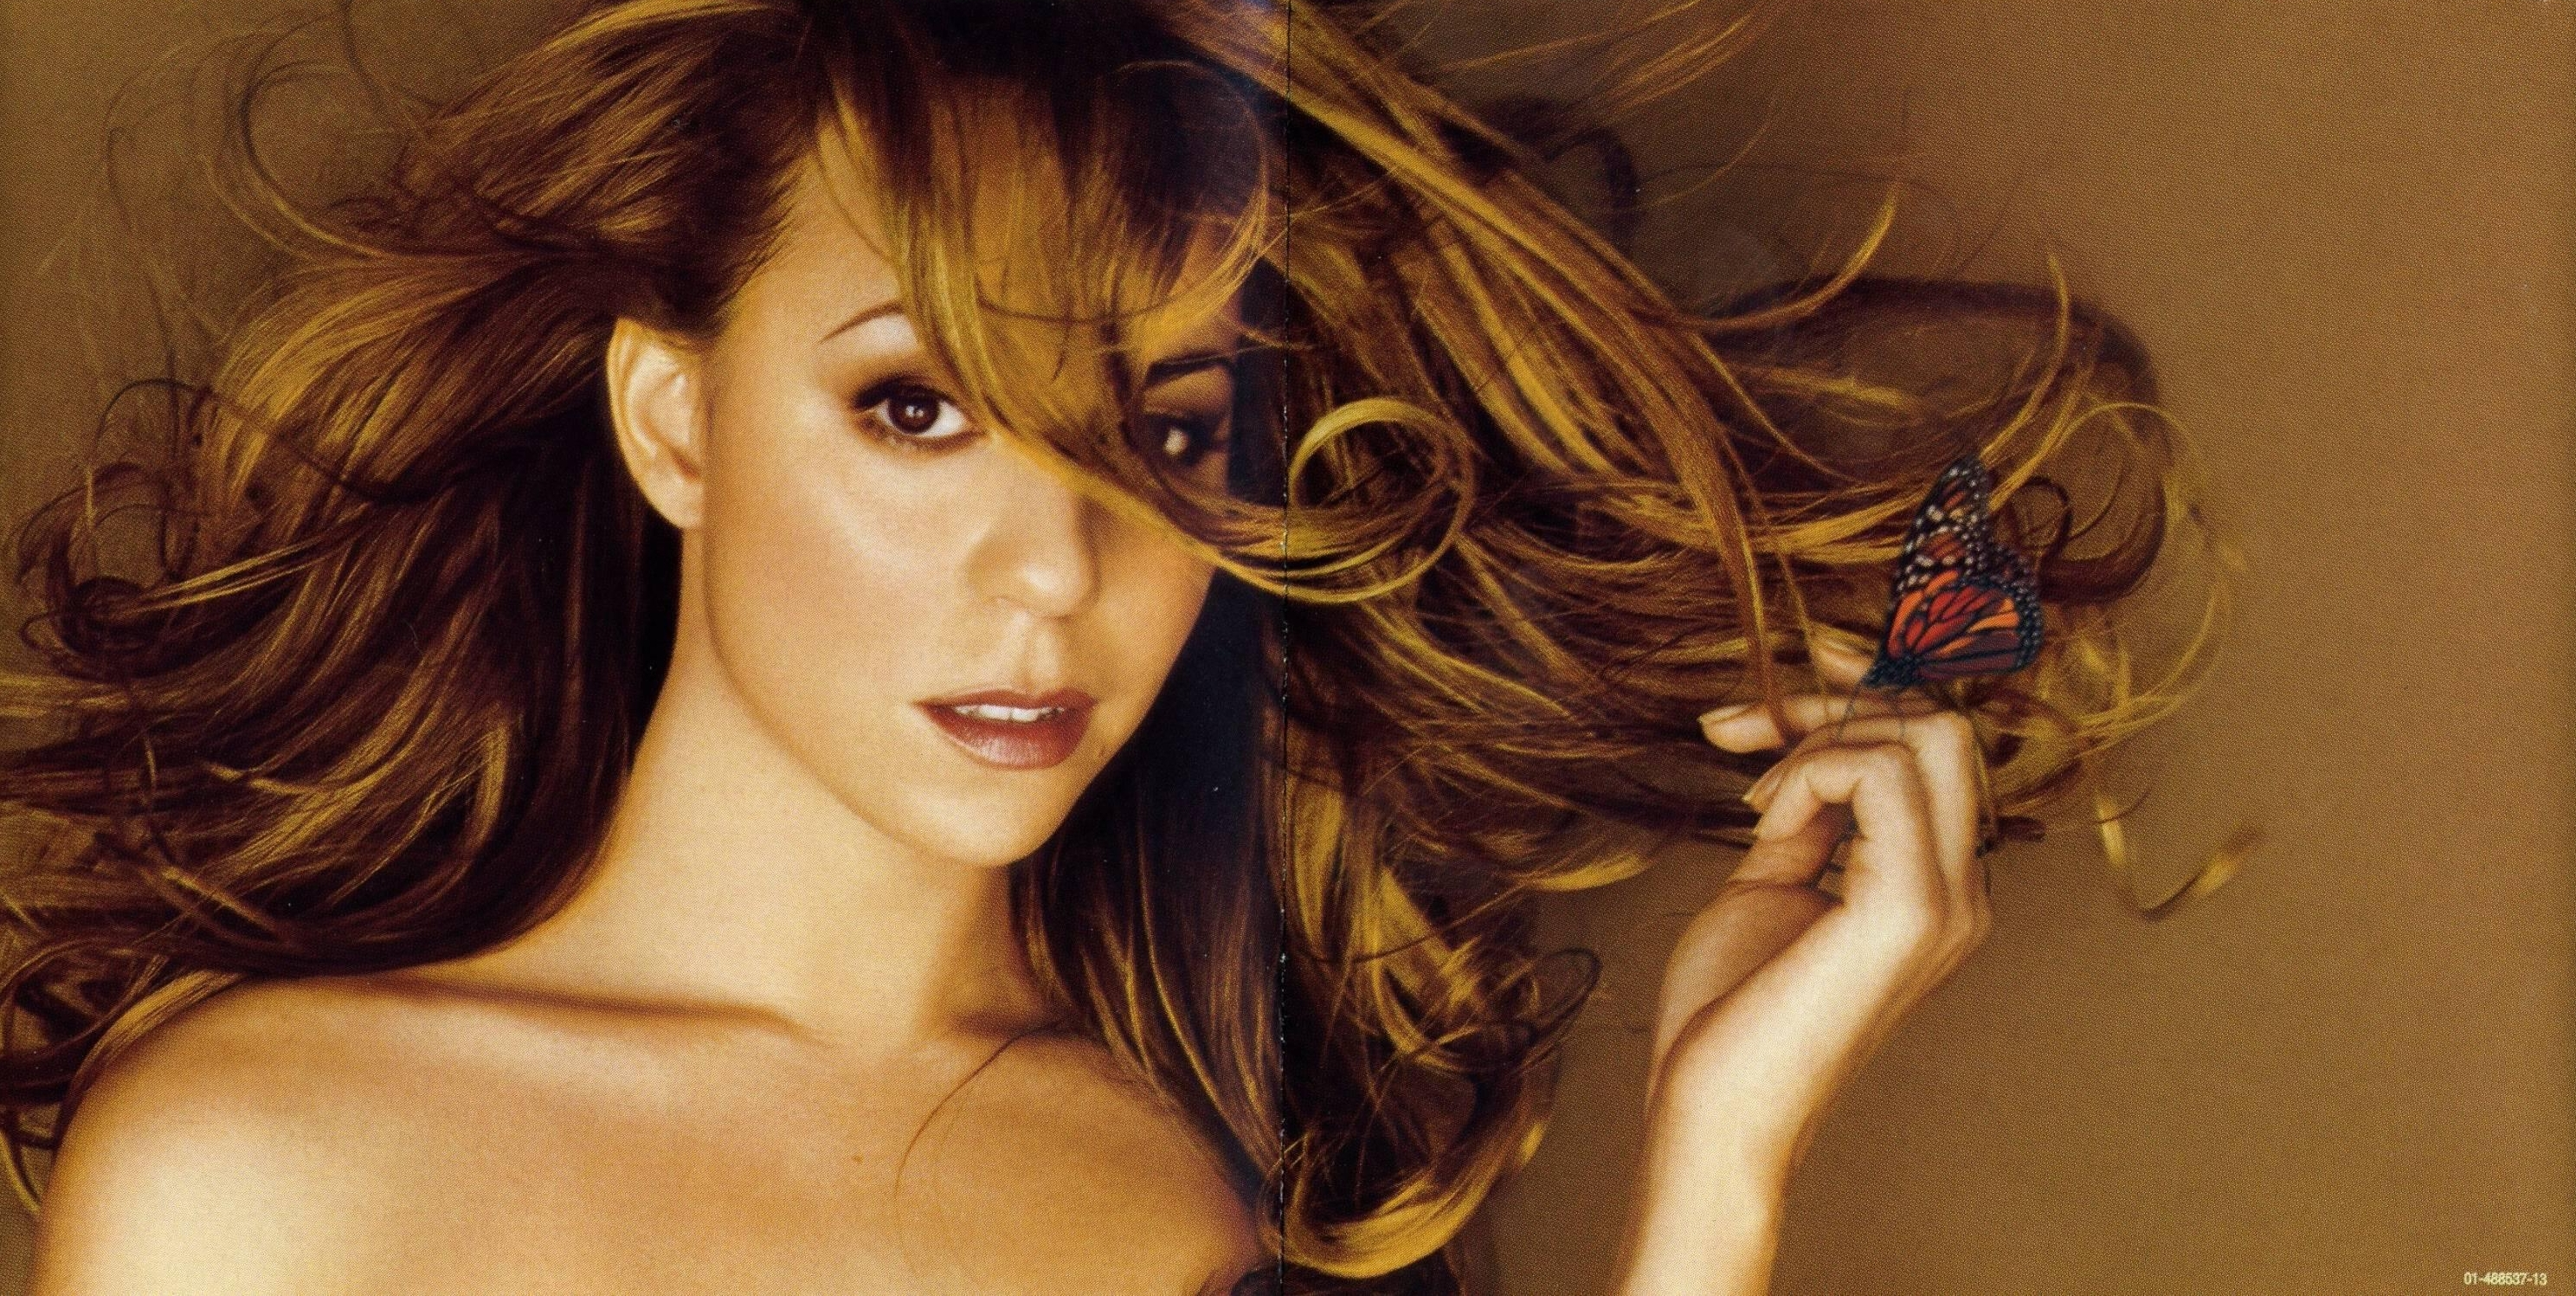 Today Celebrate The 18th Anniversary Of Mariah Careys Butterfly Album